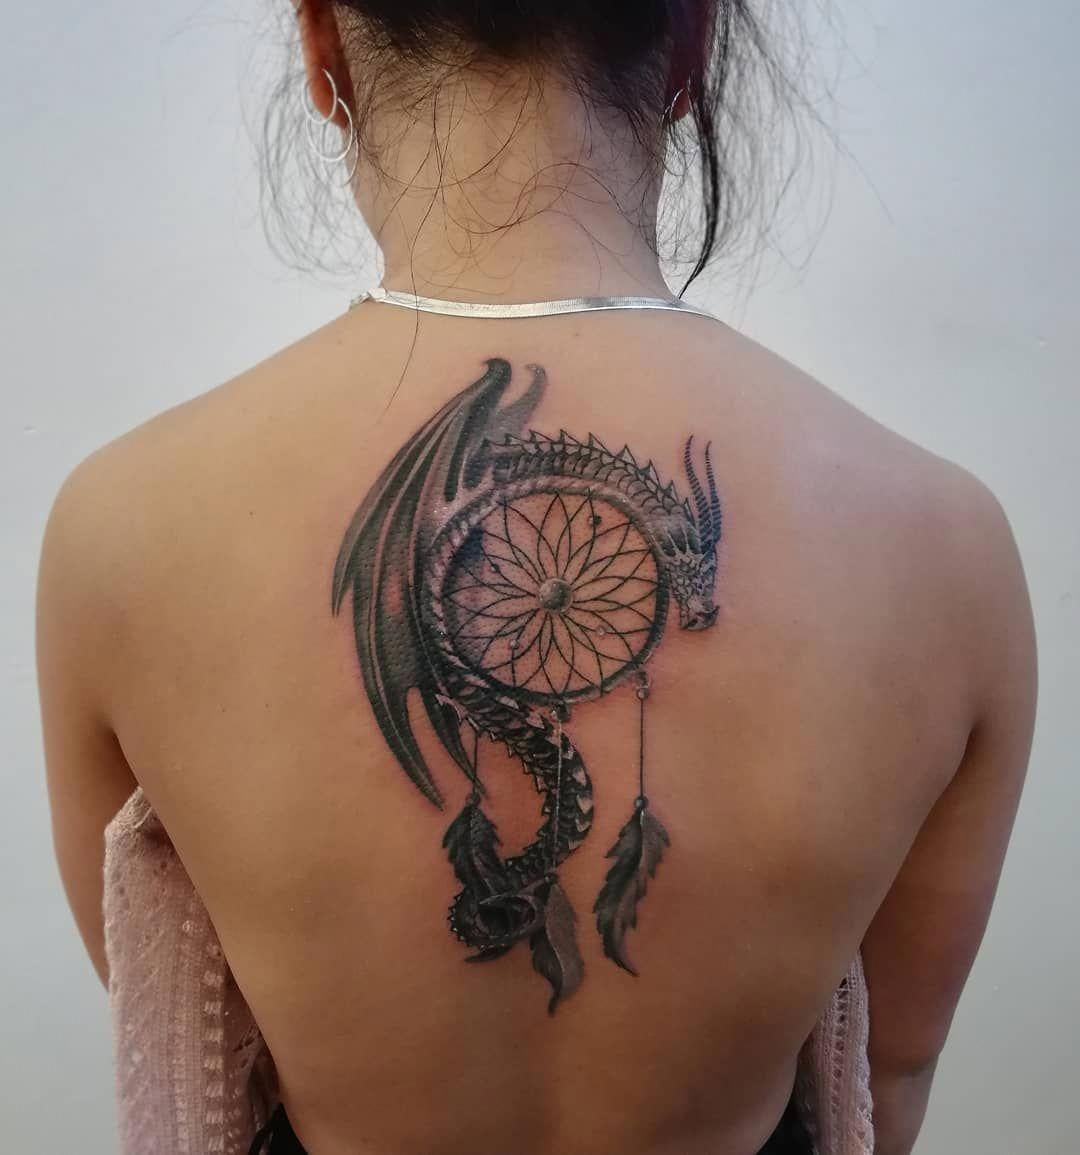 Caring For A New Tattoo With Images Dragon Tattoos For Men Dragon Tattoo For Women Tattoos For Guys